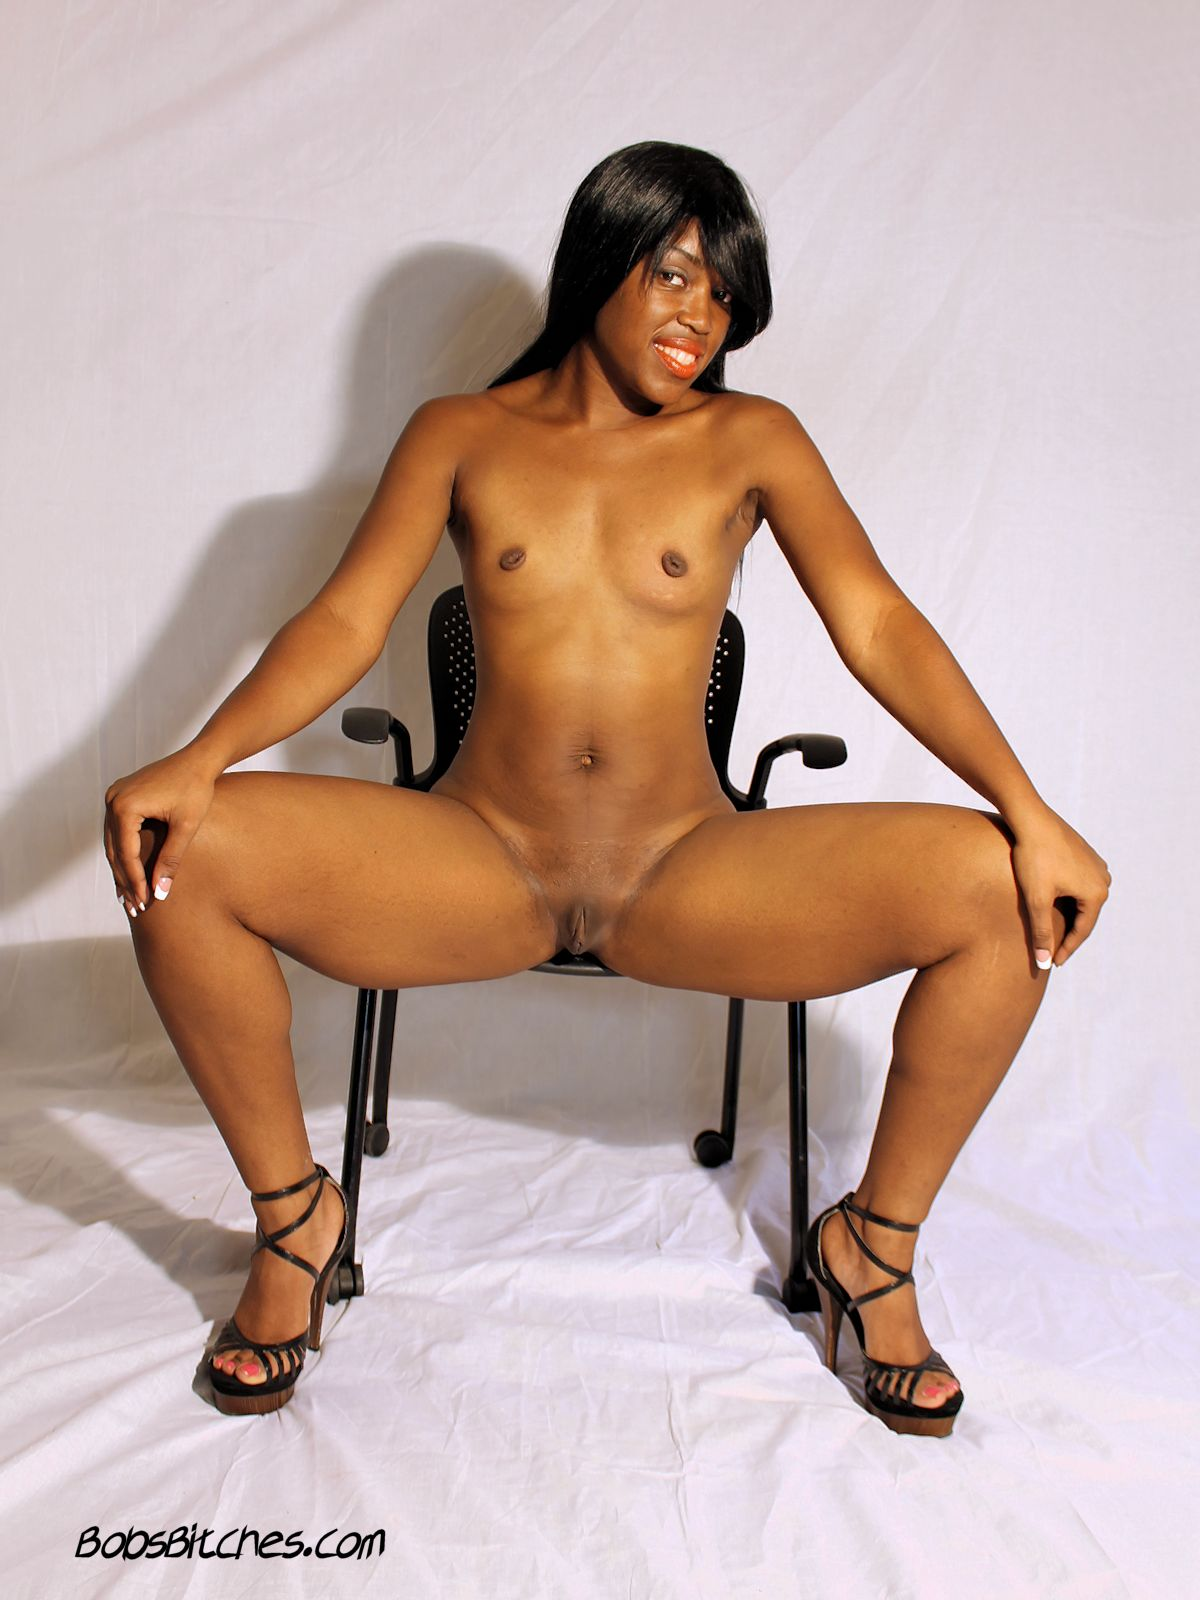 Dominican ebony milf, Arva Nalga, is naked wearing only high heels.